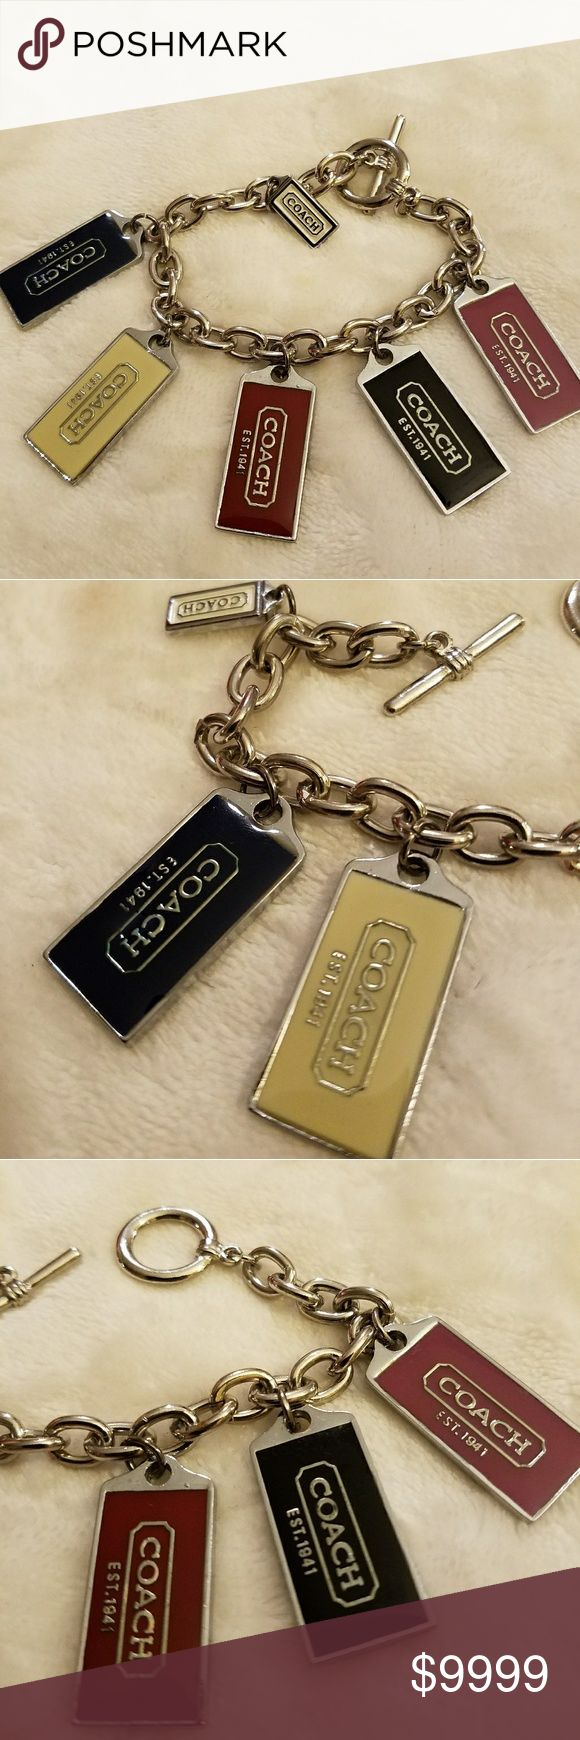 Coach🎉Charm🎉Bracelet Coach  🎉Charm🎉Bracelet 🥈Silvertone links bracelet, silvertone metal Coach luggage tags in shades of 💛Light Yellow, 🖤Black, ❤Deep Red, 💔Dark Pink, and 💙Dark Navy Blue. Coach stamped on each back. 🖤RARE🖤 find with 🚫NO tarnish. 👉EUC👈. Coach Jewelry Bracelets